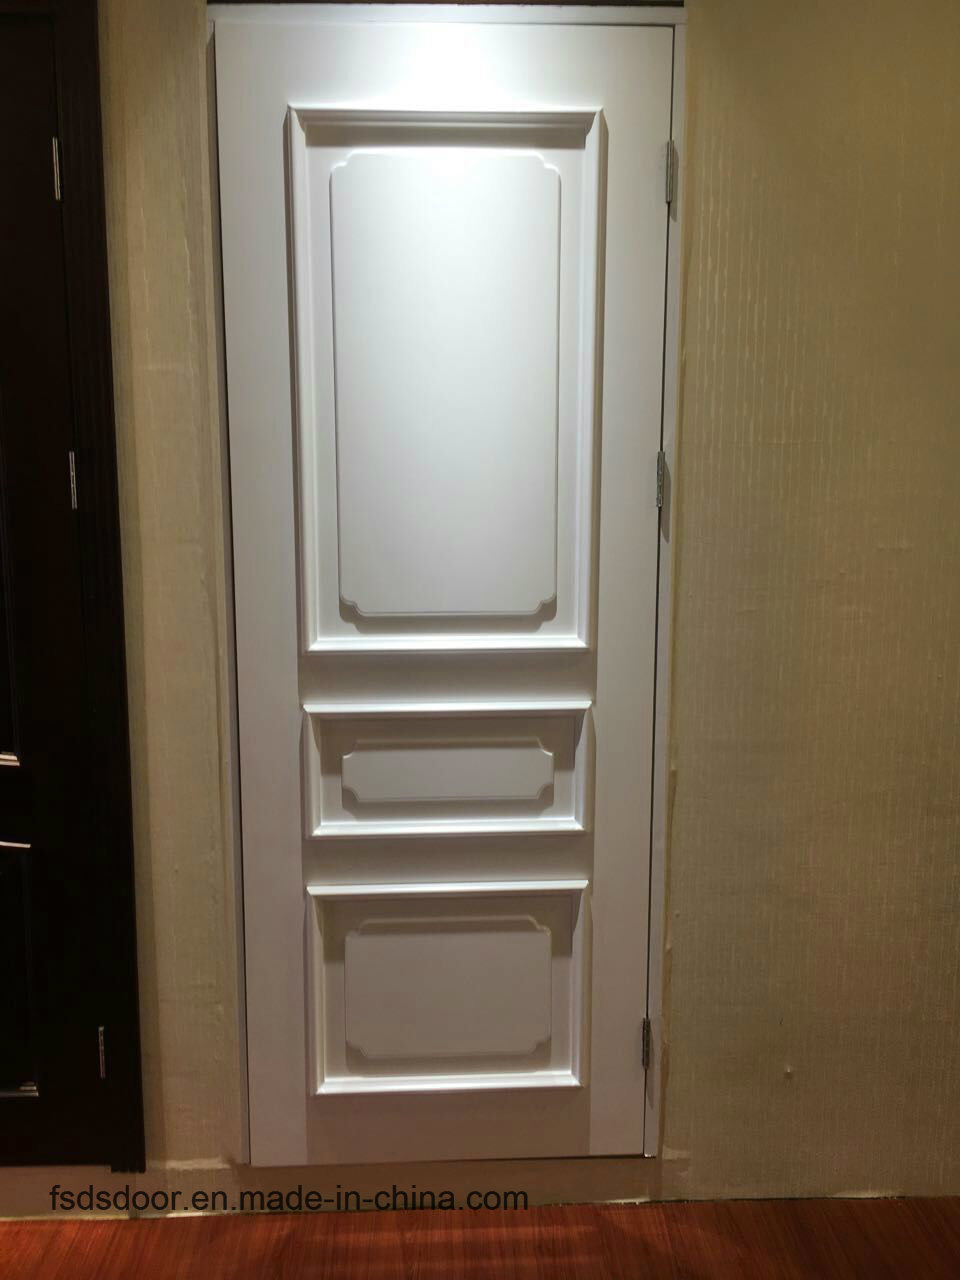 Classical Style High Quality Solid Wooden Door with White Colour for Hotel Apartment School (DS-046)